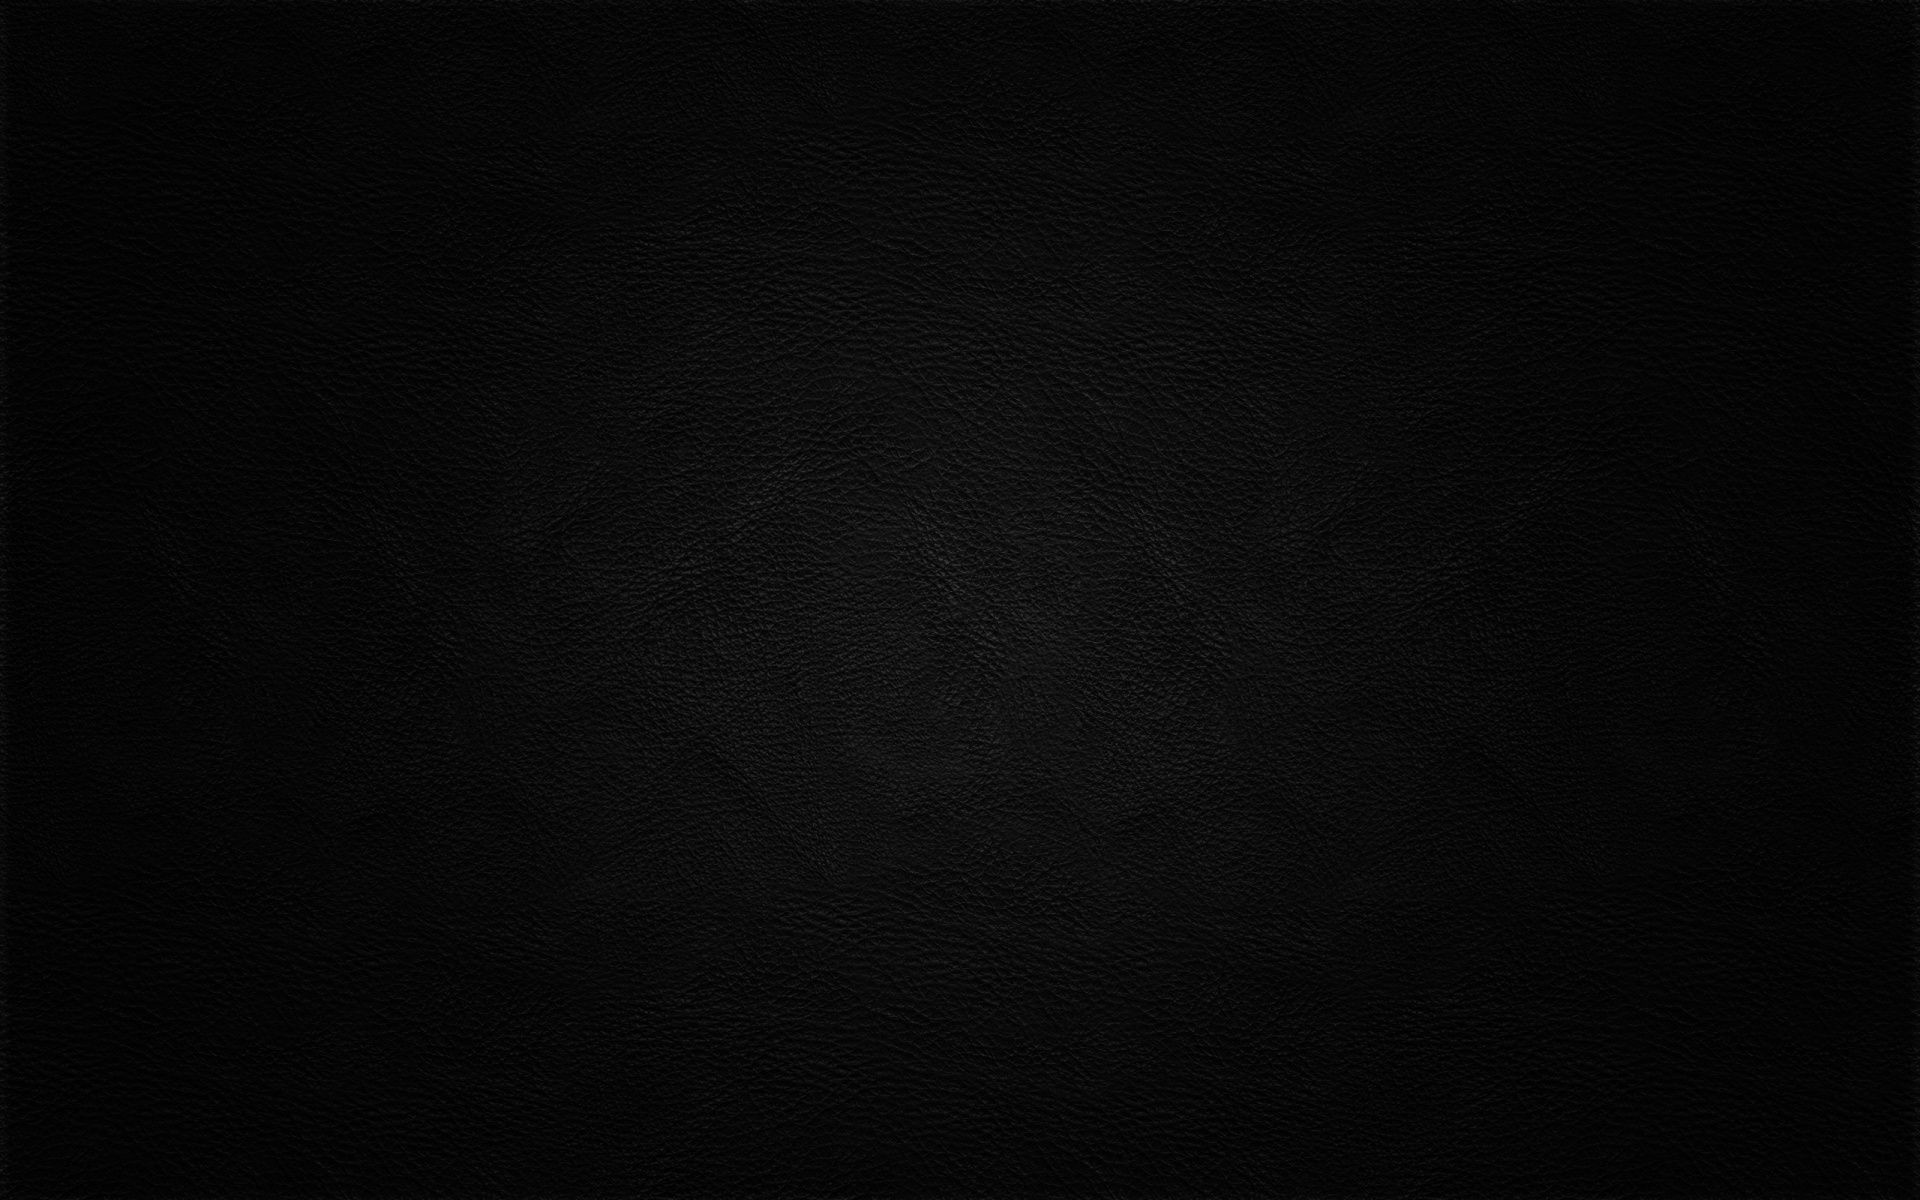 Plain Black 3D 22 Wide Wallpaper